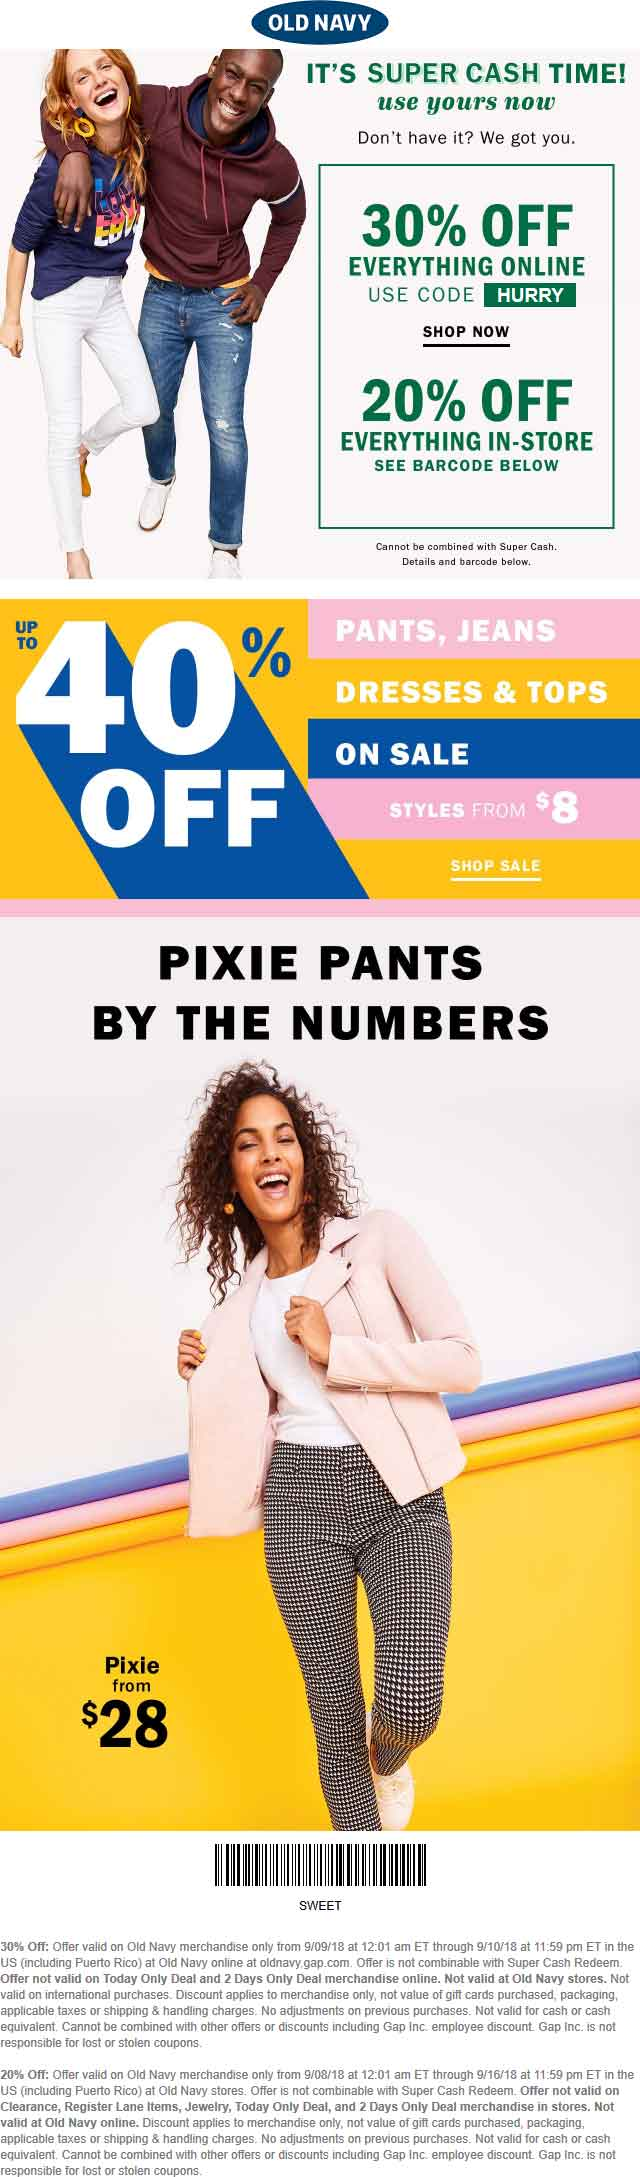 Old Navy Coupon July 2019 20% off everything at Old Navy, or 30% online via promo code HURRY